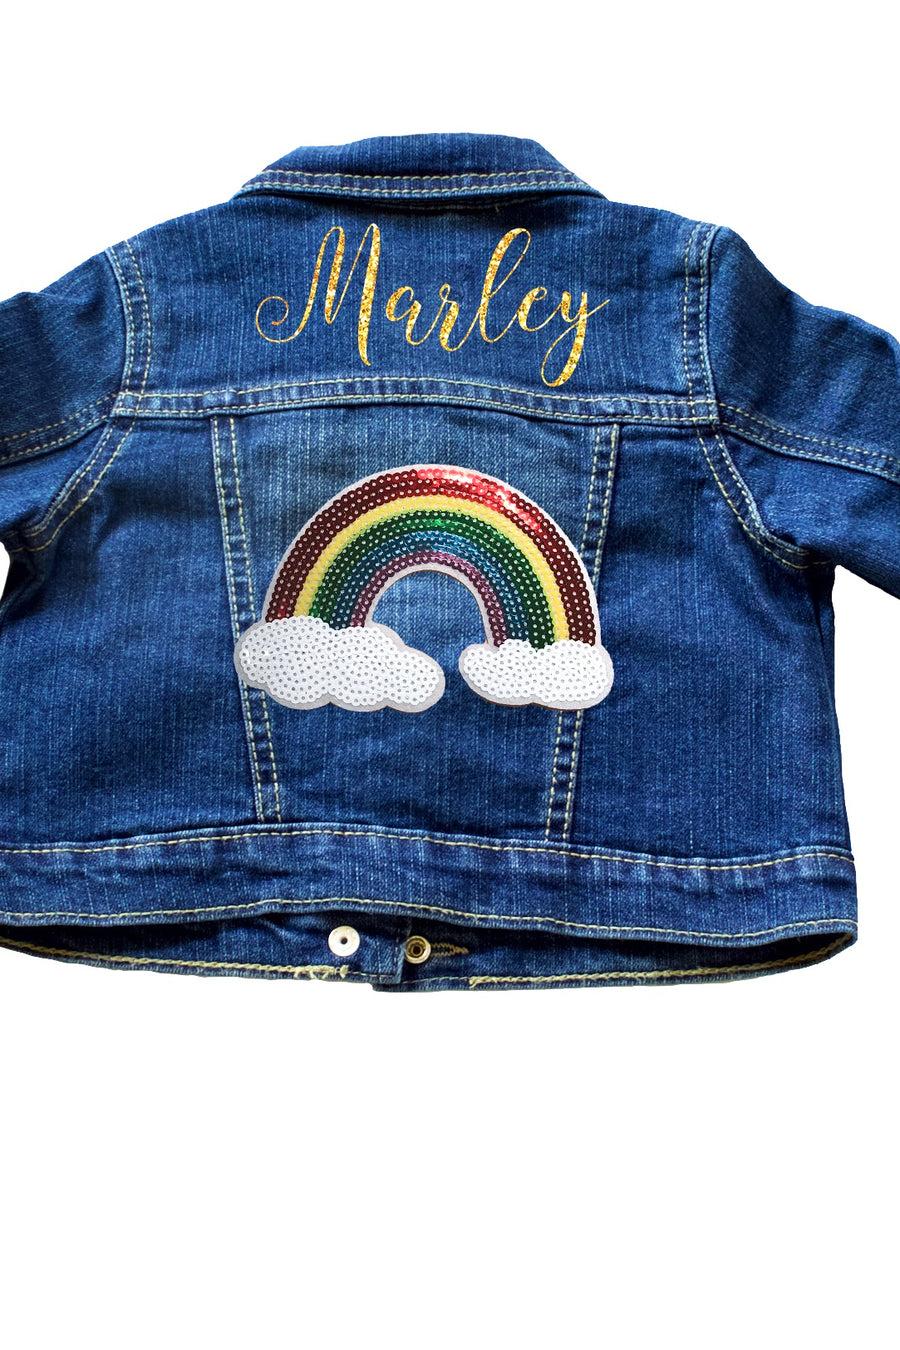 Personalized-rainbow-sequin-patch-glitter-customized-denim-baby-toddler-jacket-It's My Party Kids Boutique